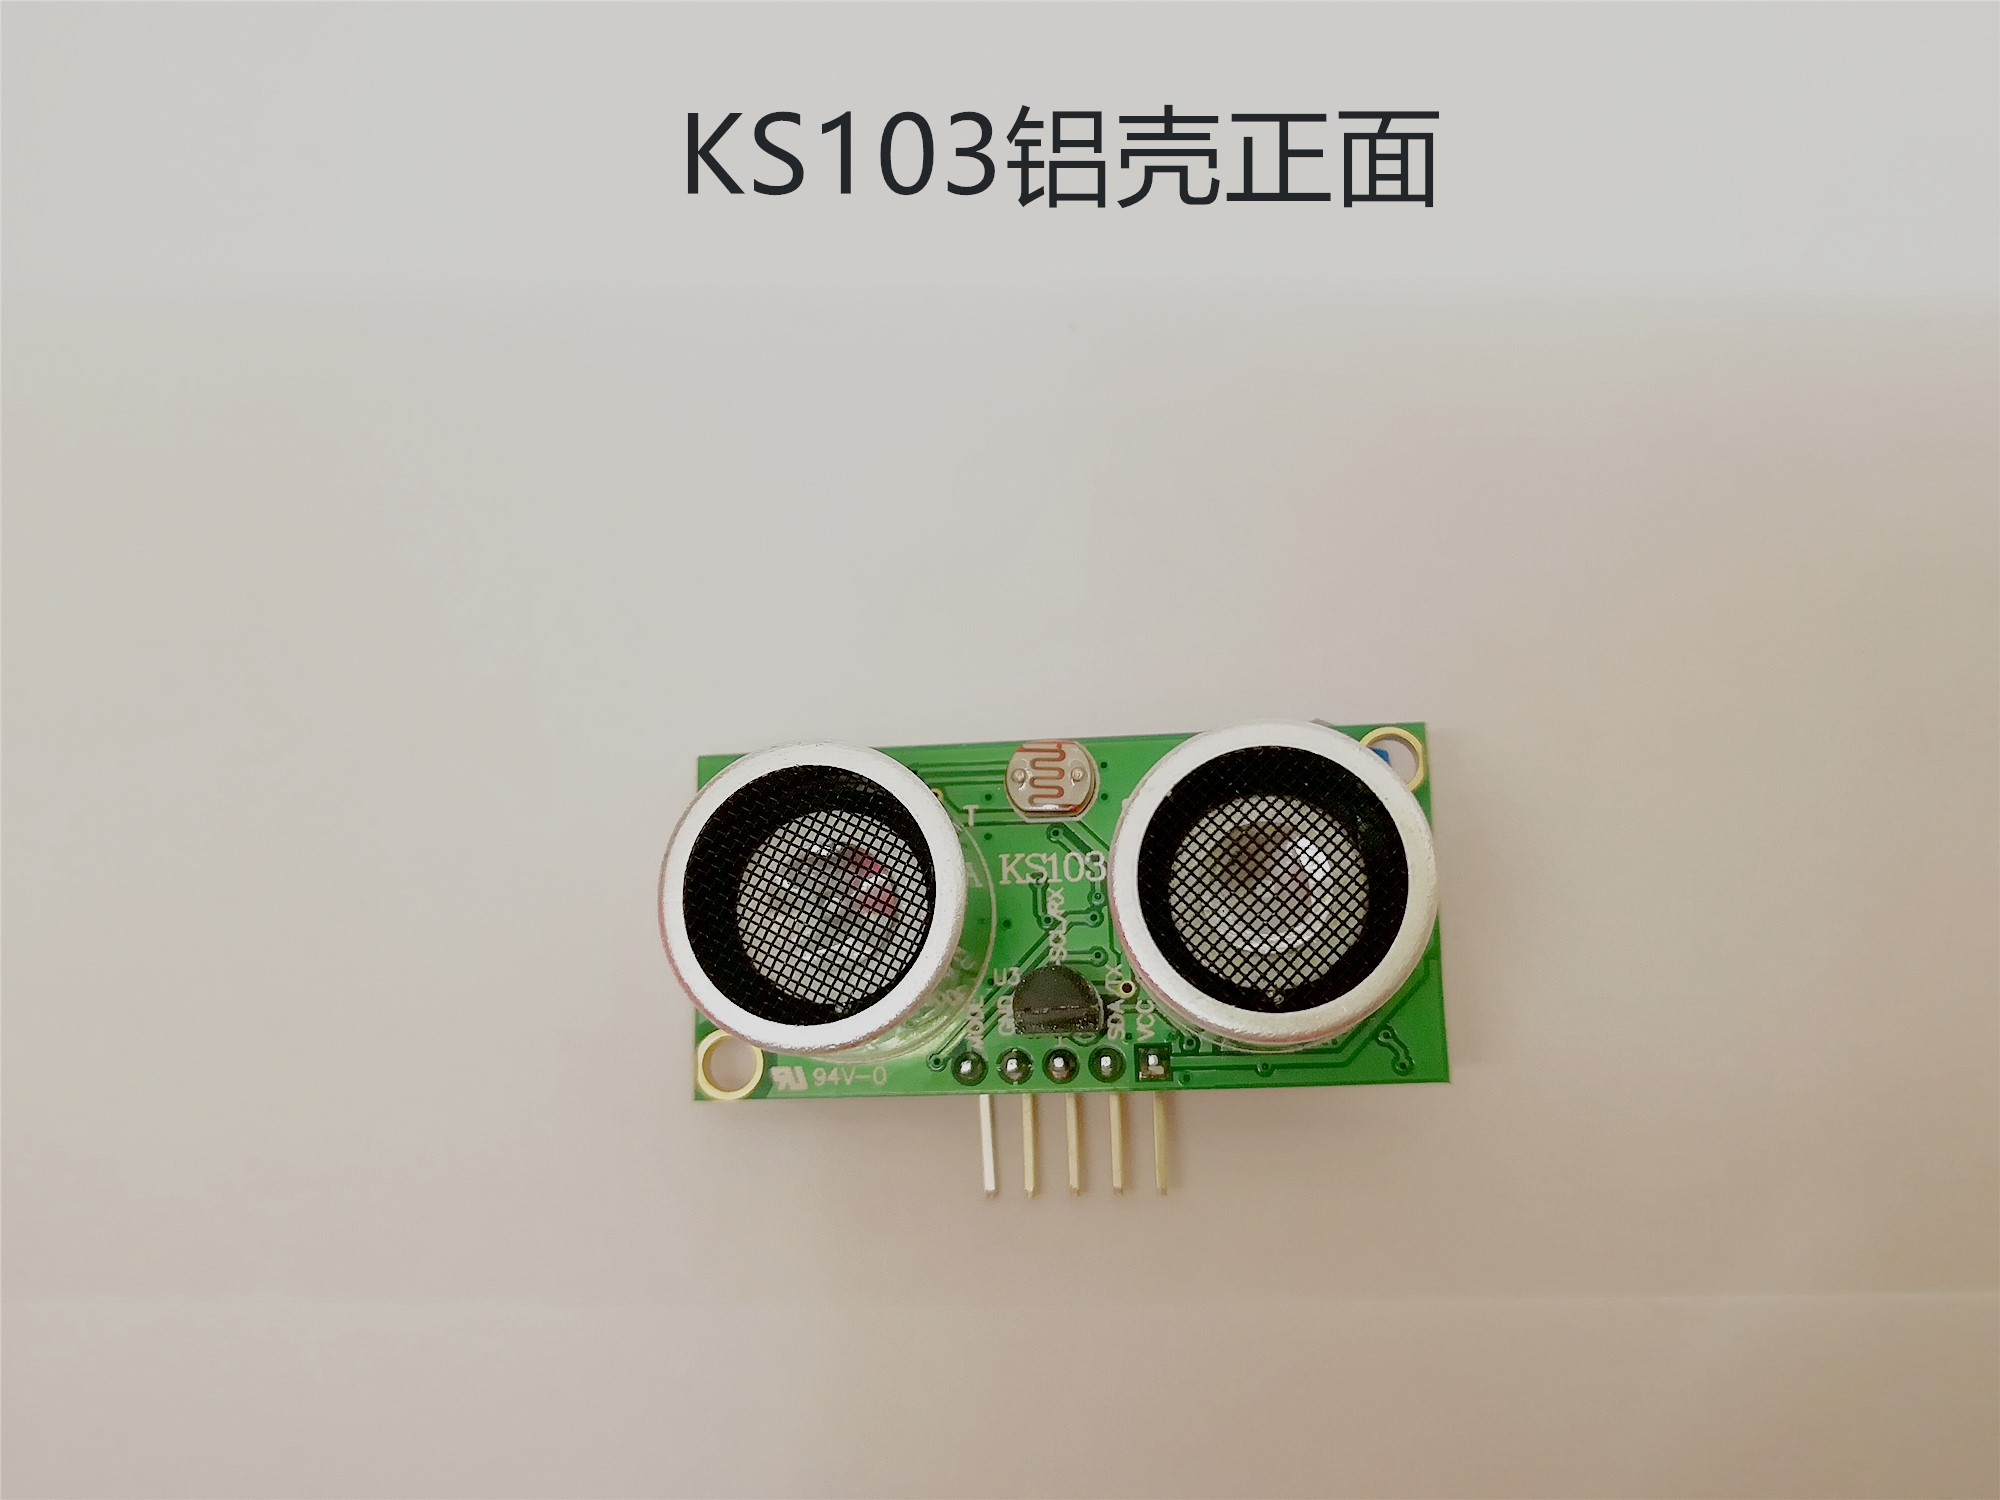 Ultrasonic Ranging Module Sensor Model Positioning Industrial Control I2C/Serial Interface